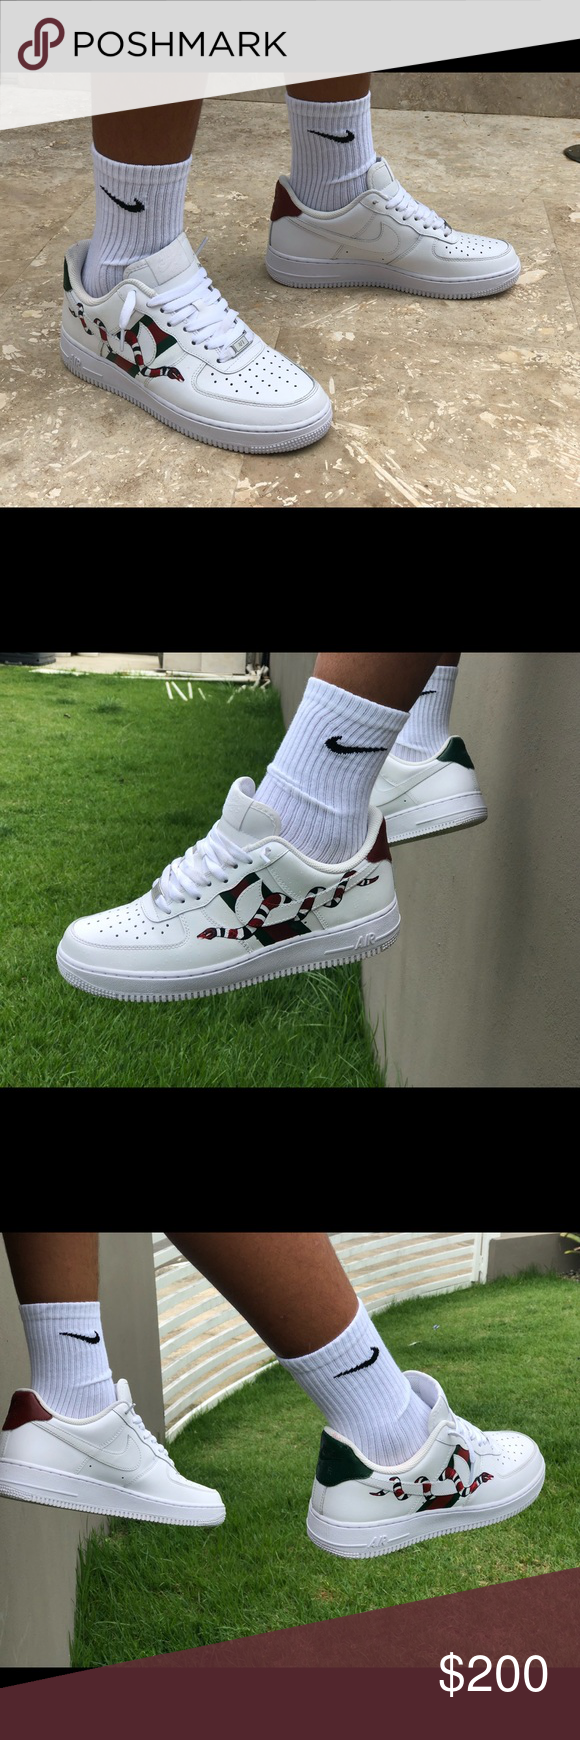 Air Force 1 Gucci custom Gucci, Air force 1, How to wear